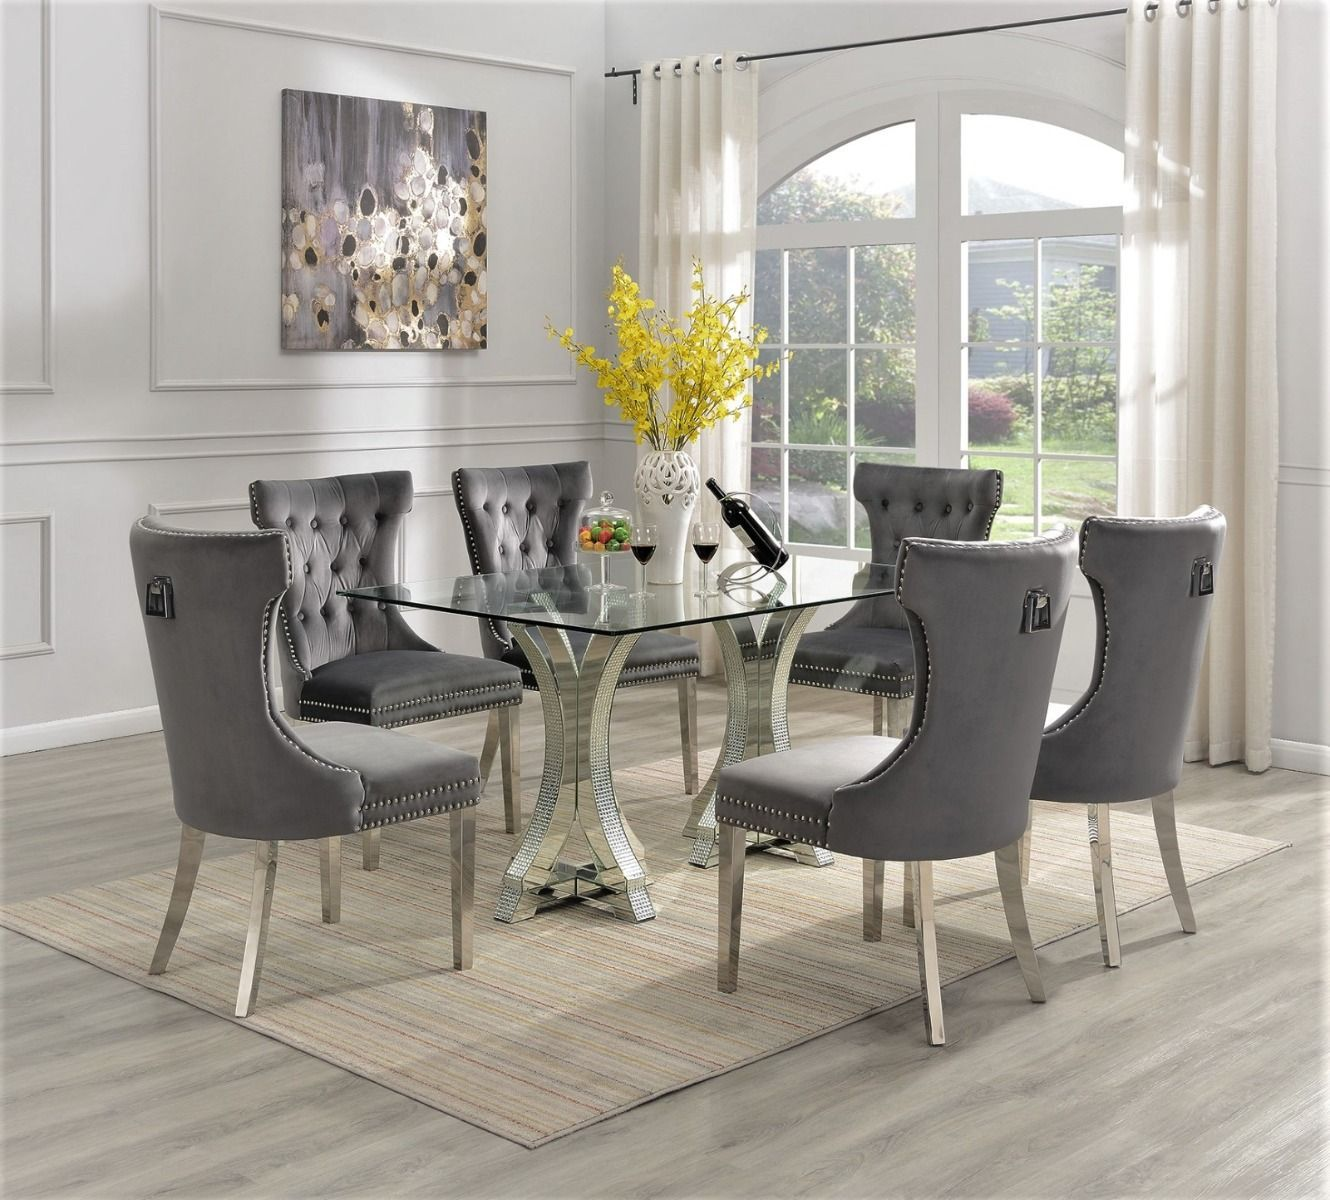 9 Pieces Tempered Glass Top Dinette Set Stone